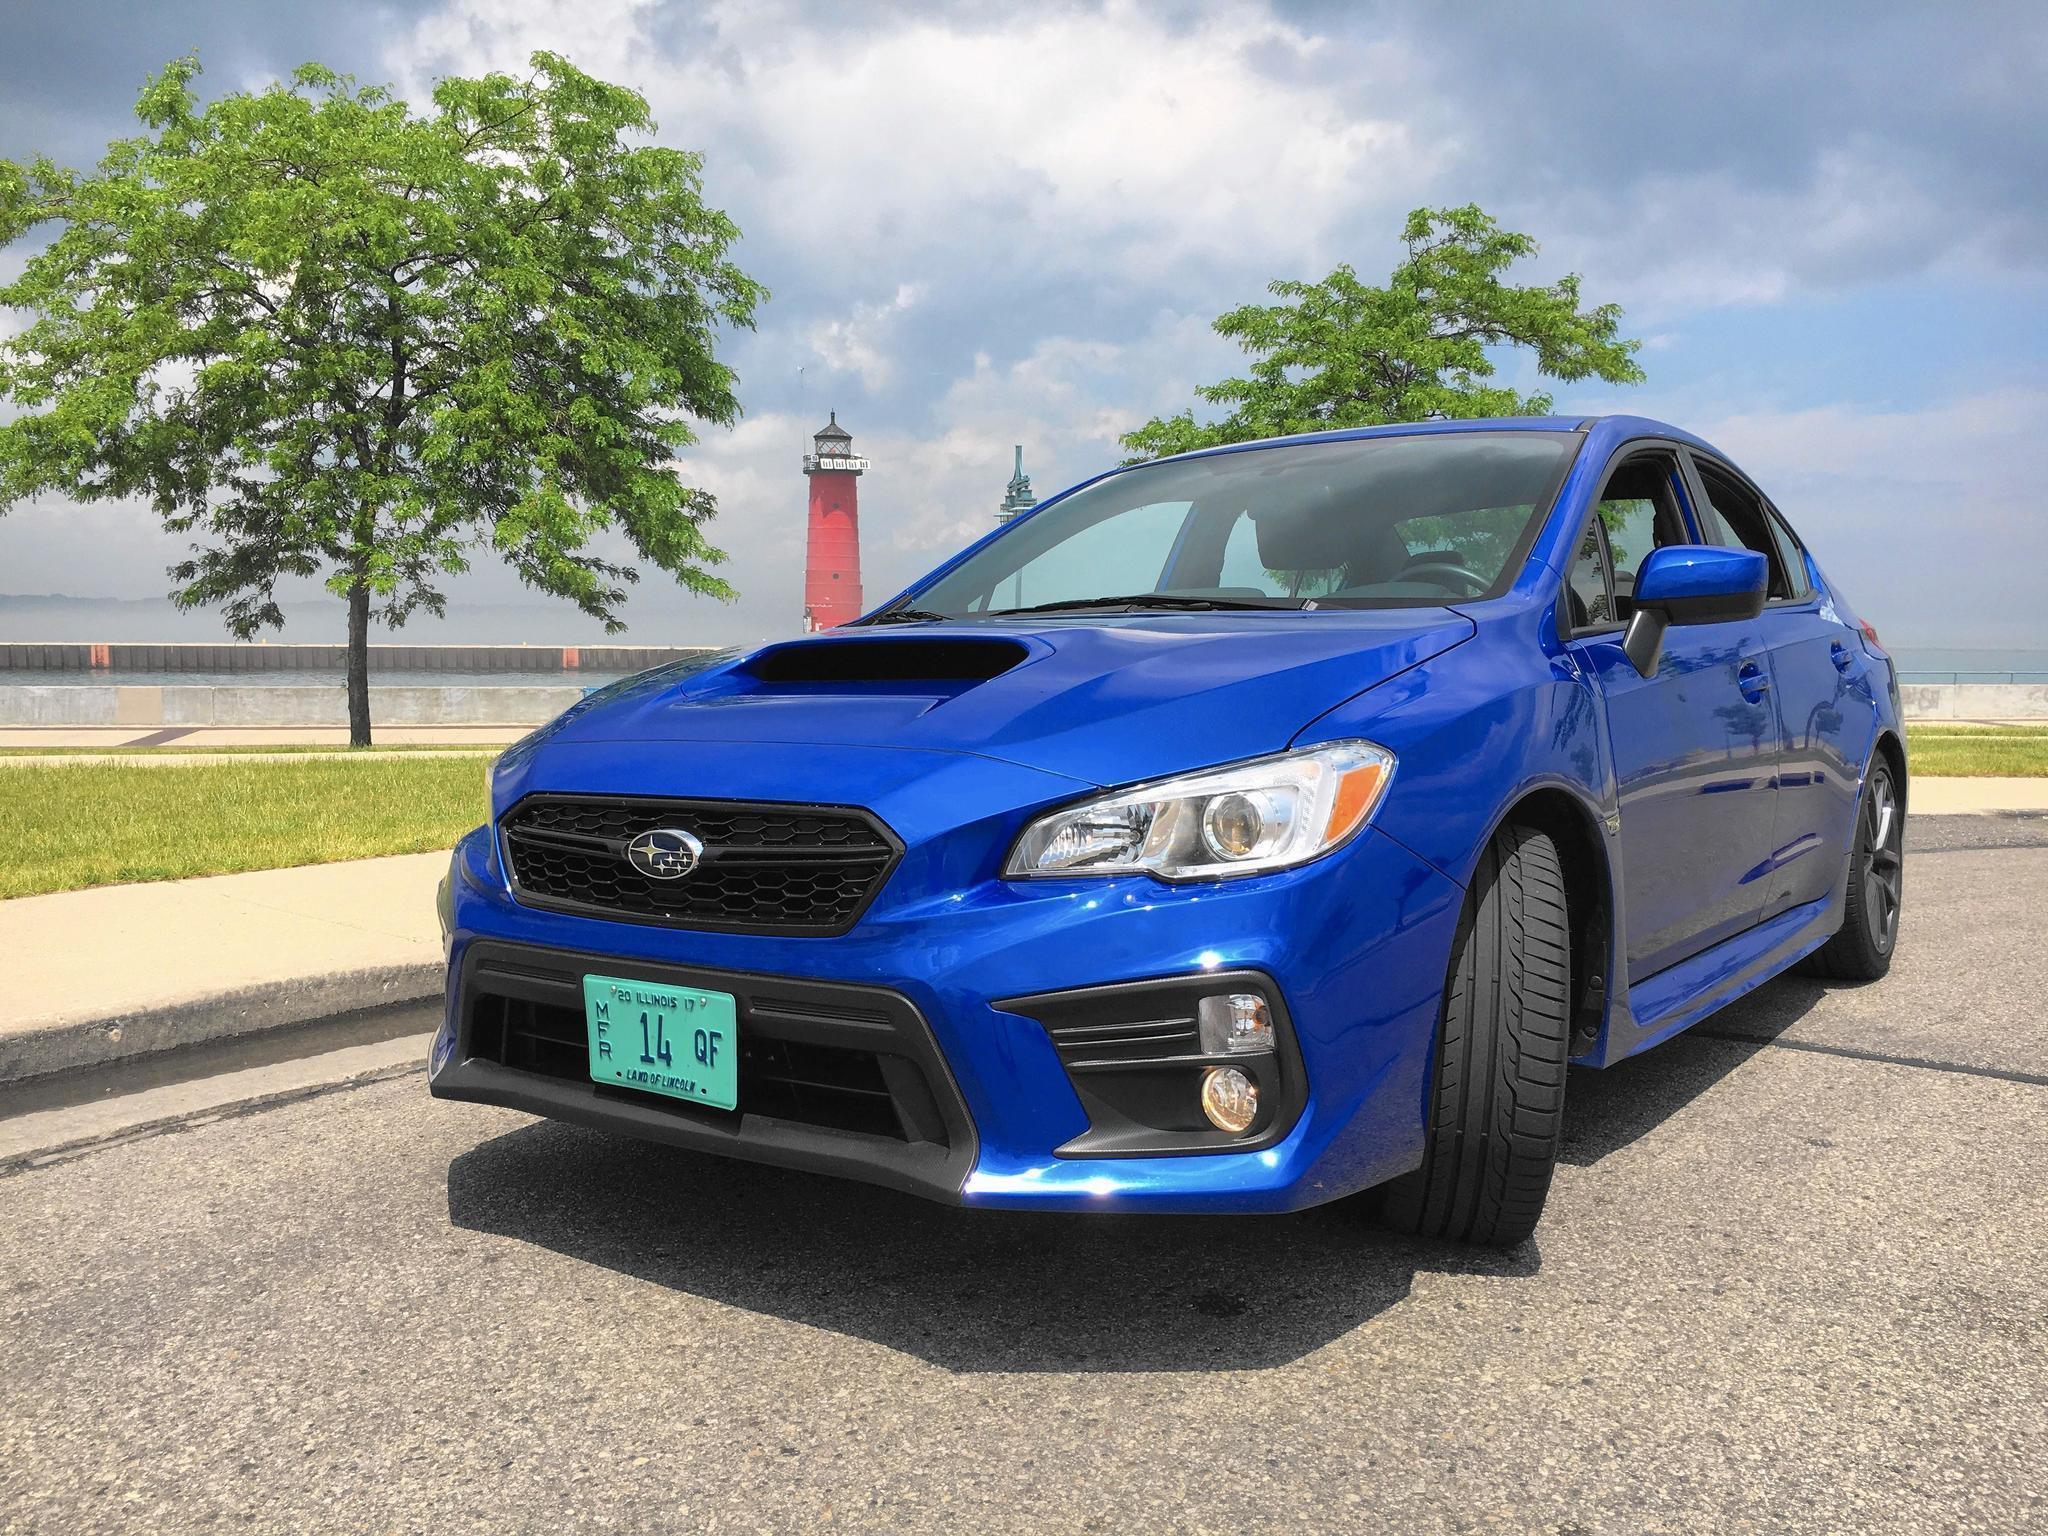 2018 subaru wrx is too loud and i 39 m too old chicago tribune. Black Bedroom Furniture Sets. Home Design Ideas